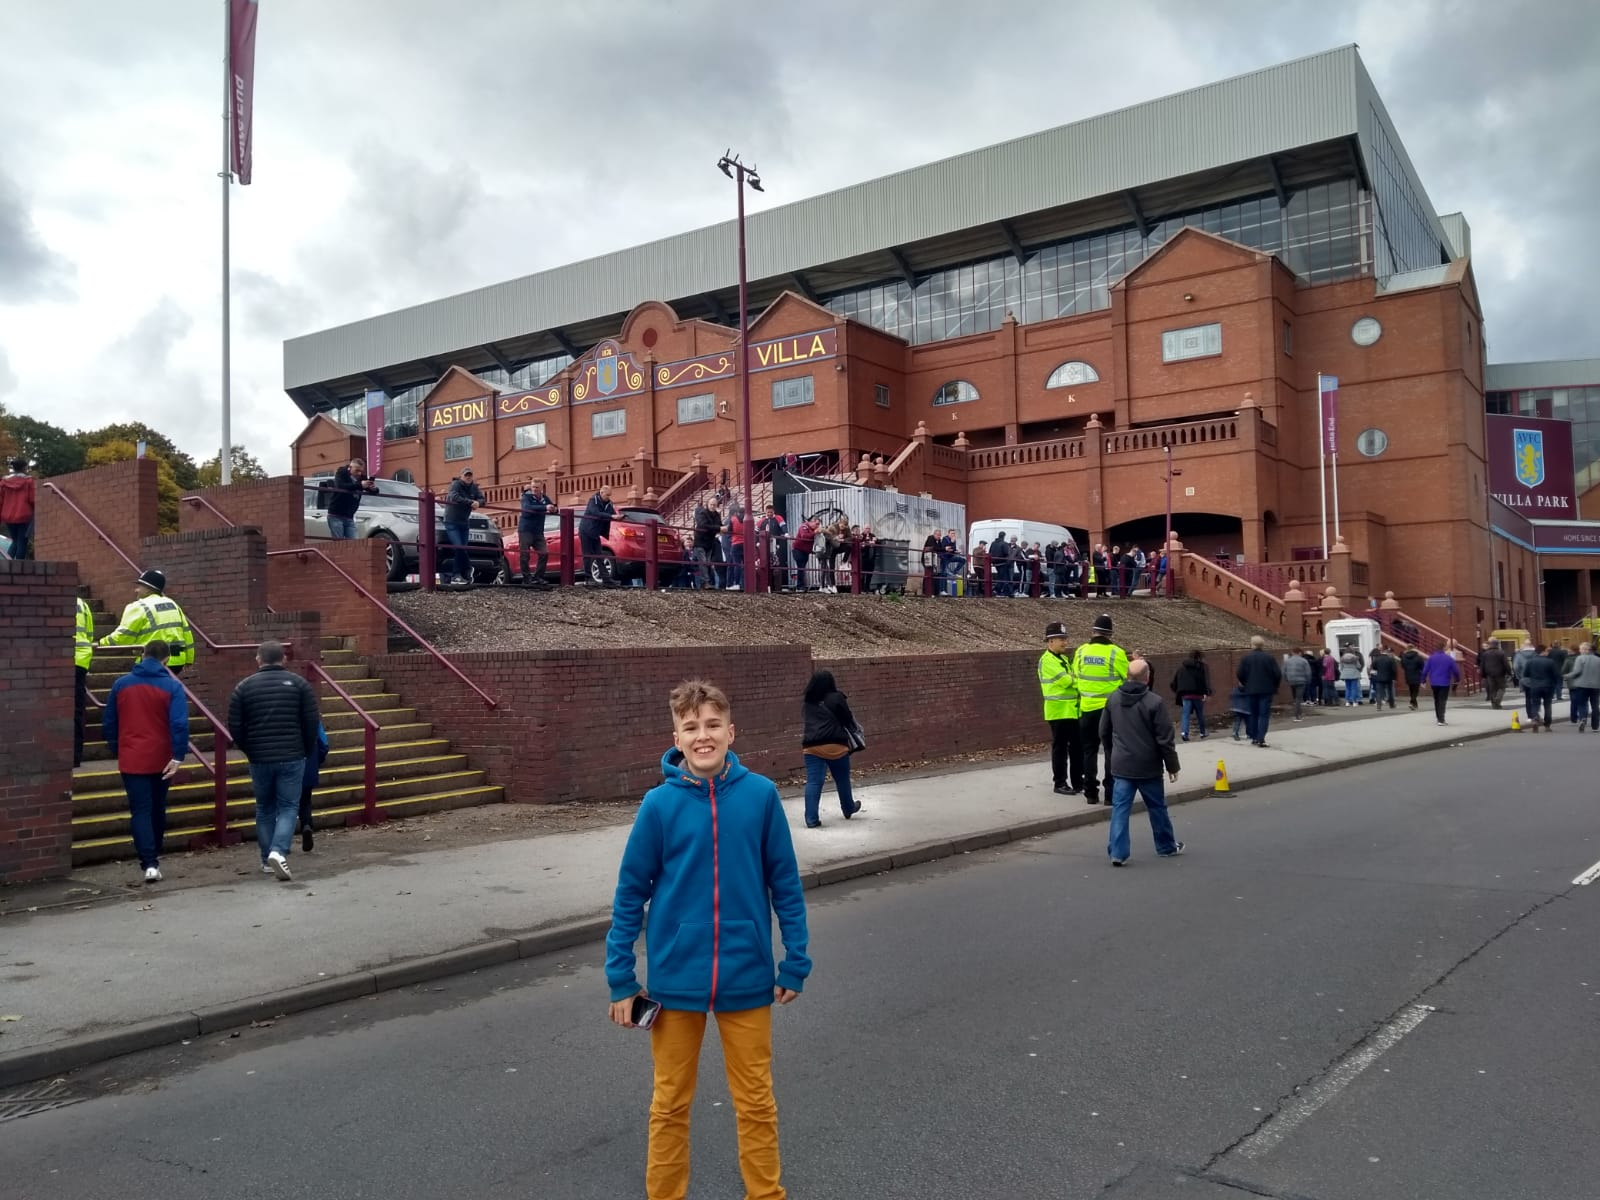 Aston Villa v Brighton and Hove Albion 19-10-2019